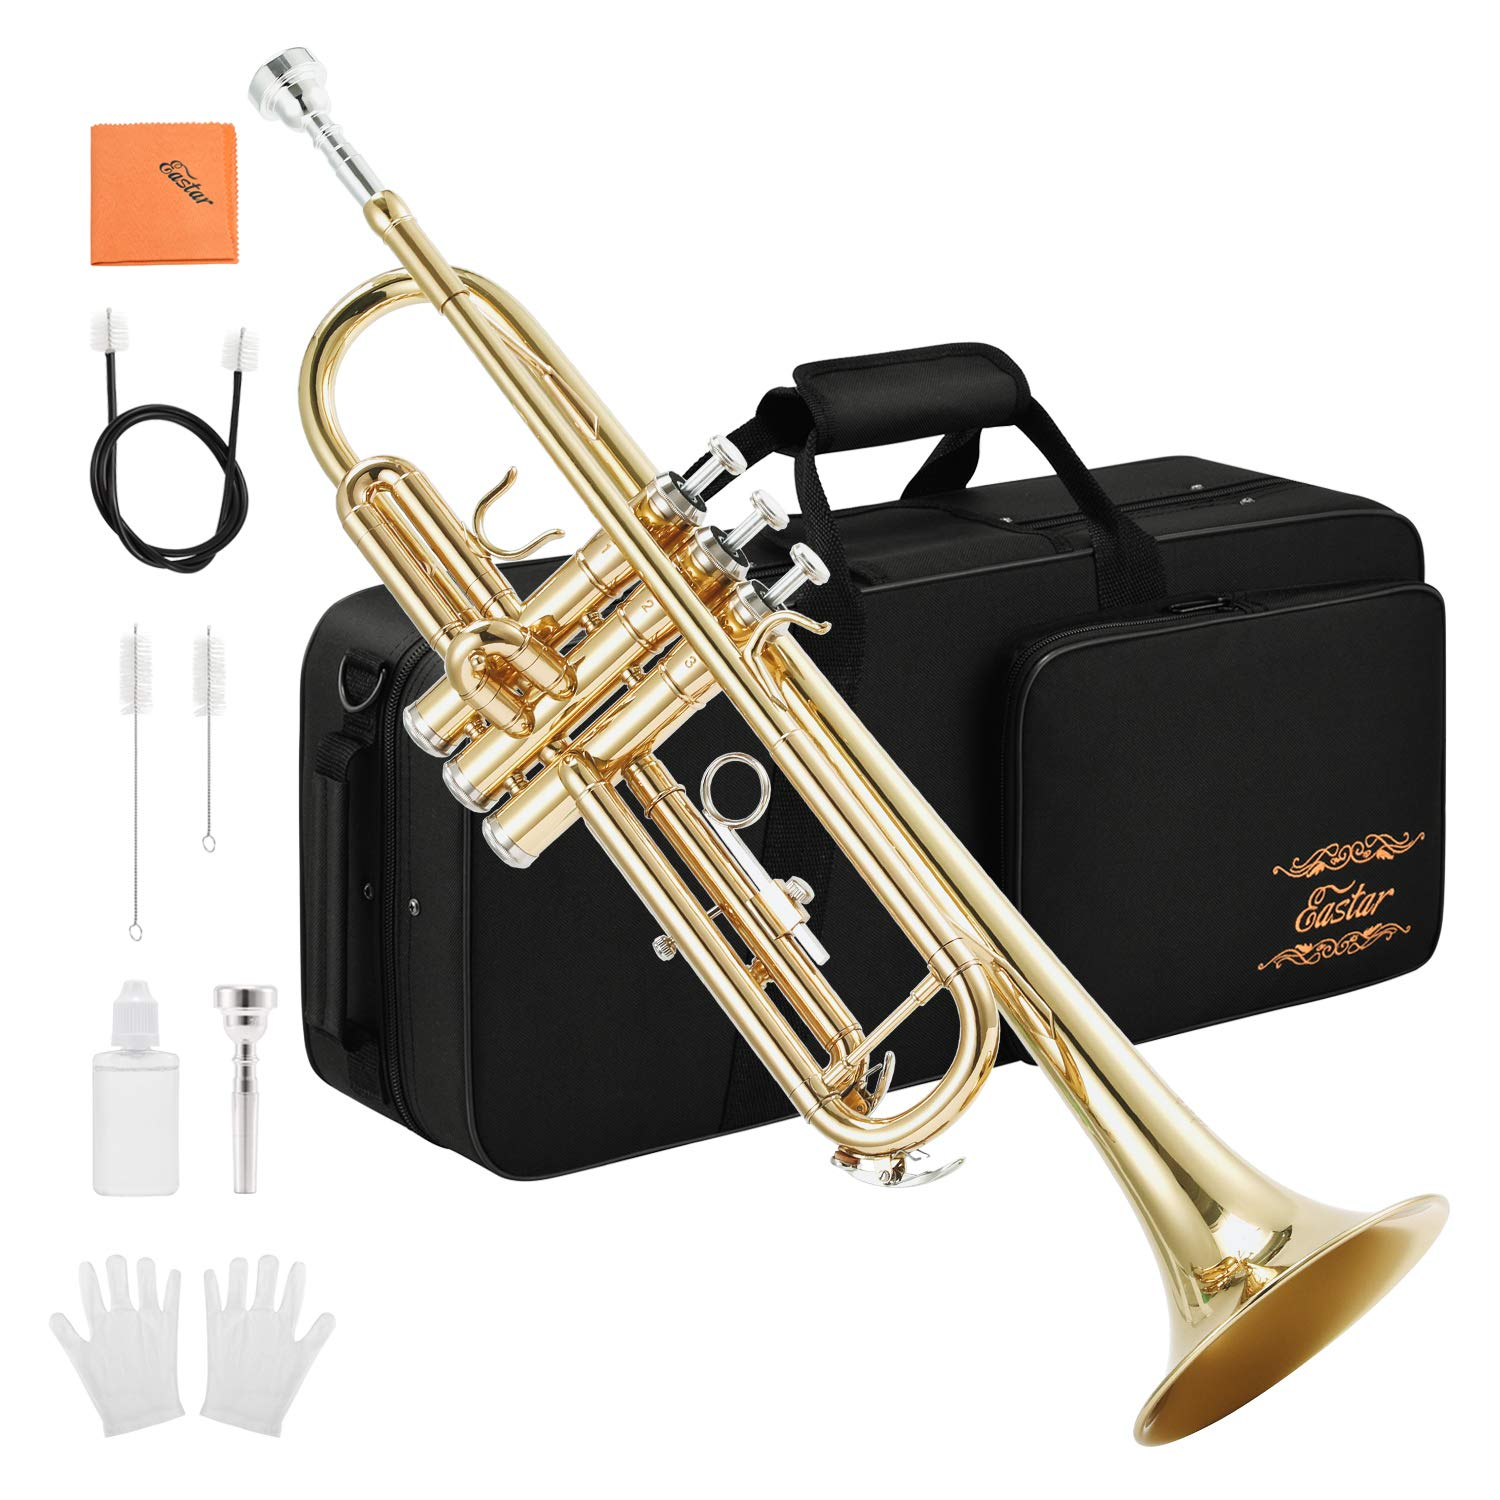 Eastar Gold Trumpet Brass ETR-380 Standard Bb Trumpet Set For Student Beginner With Hard Case,Gloves, 7 C Mouthpiece, Valve Oil and Trumpet Cleaning Kit by Eastar (Image #1)